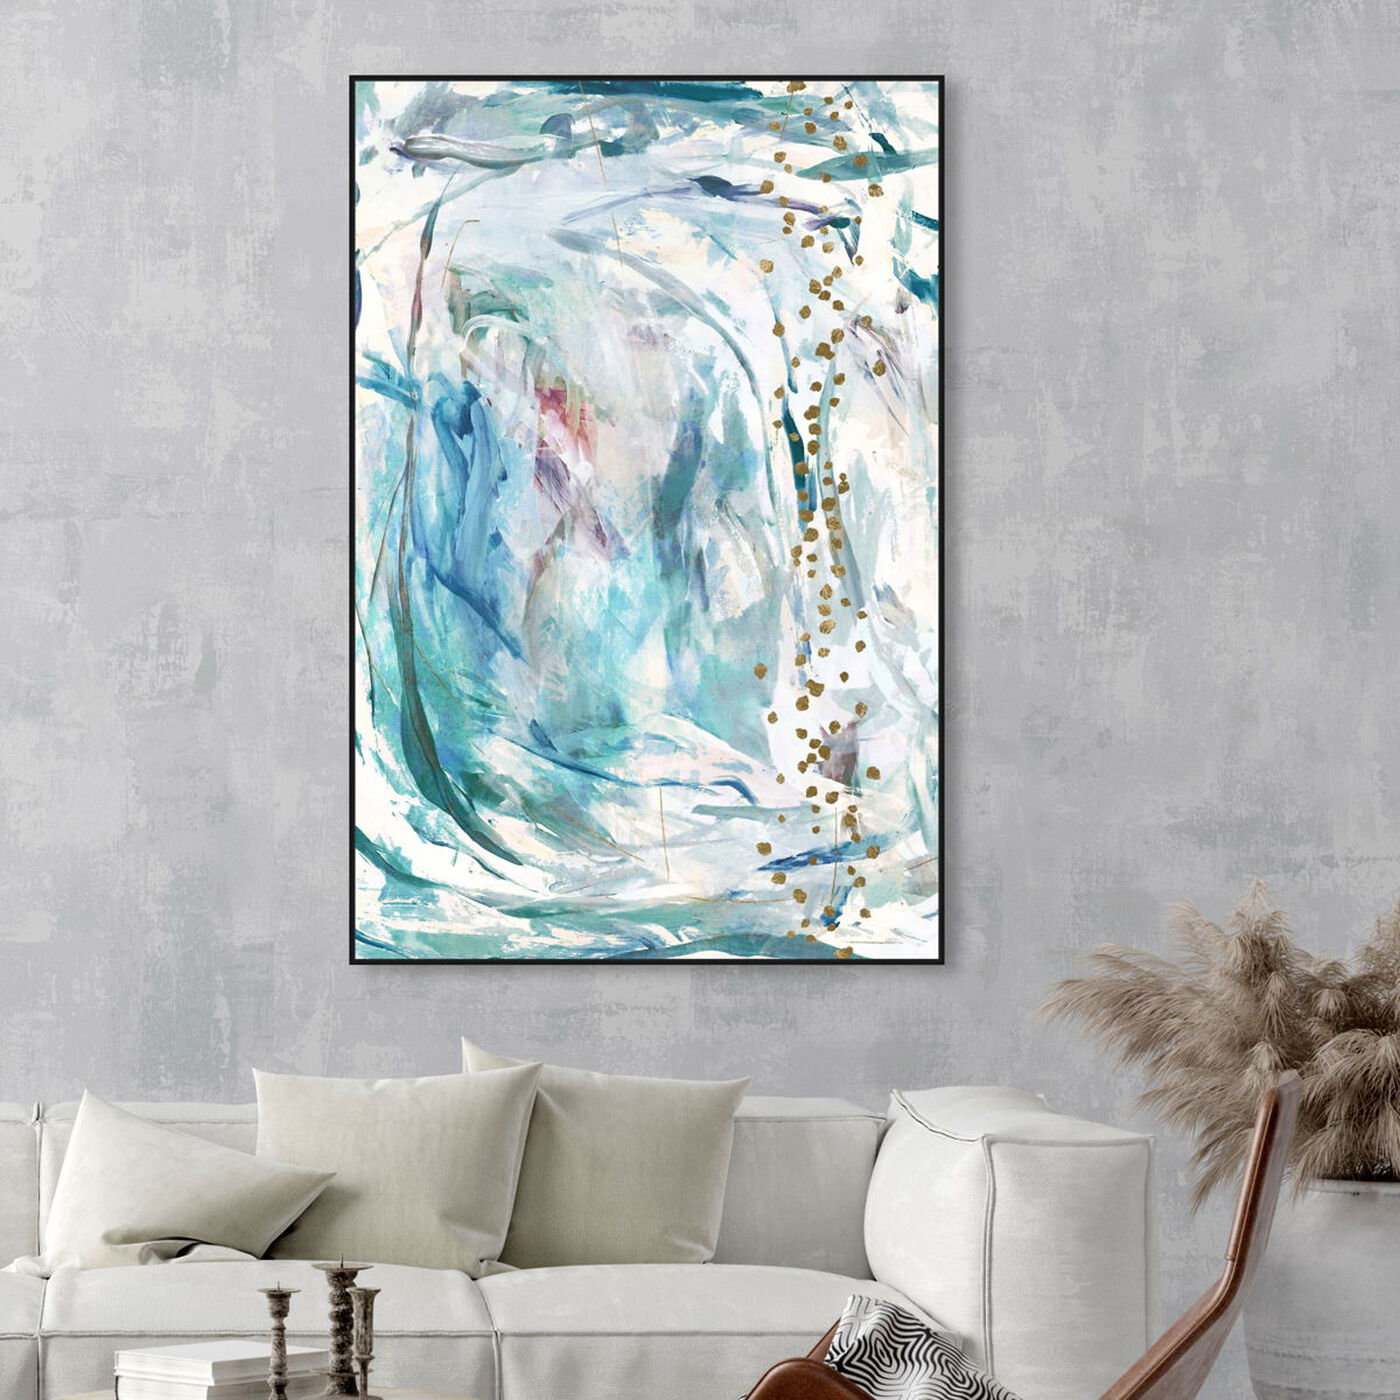 Hanging view of Sunrise of our Love featuring abstract and paint art.